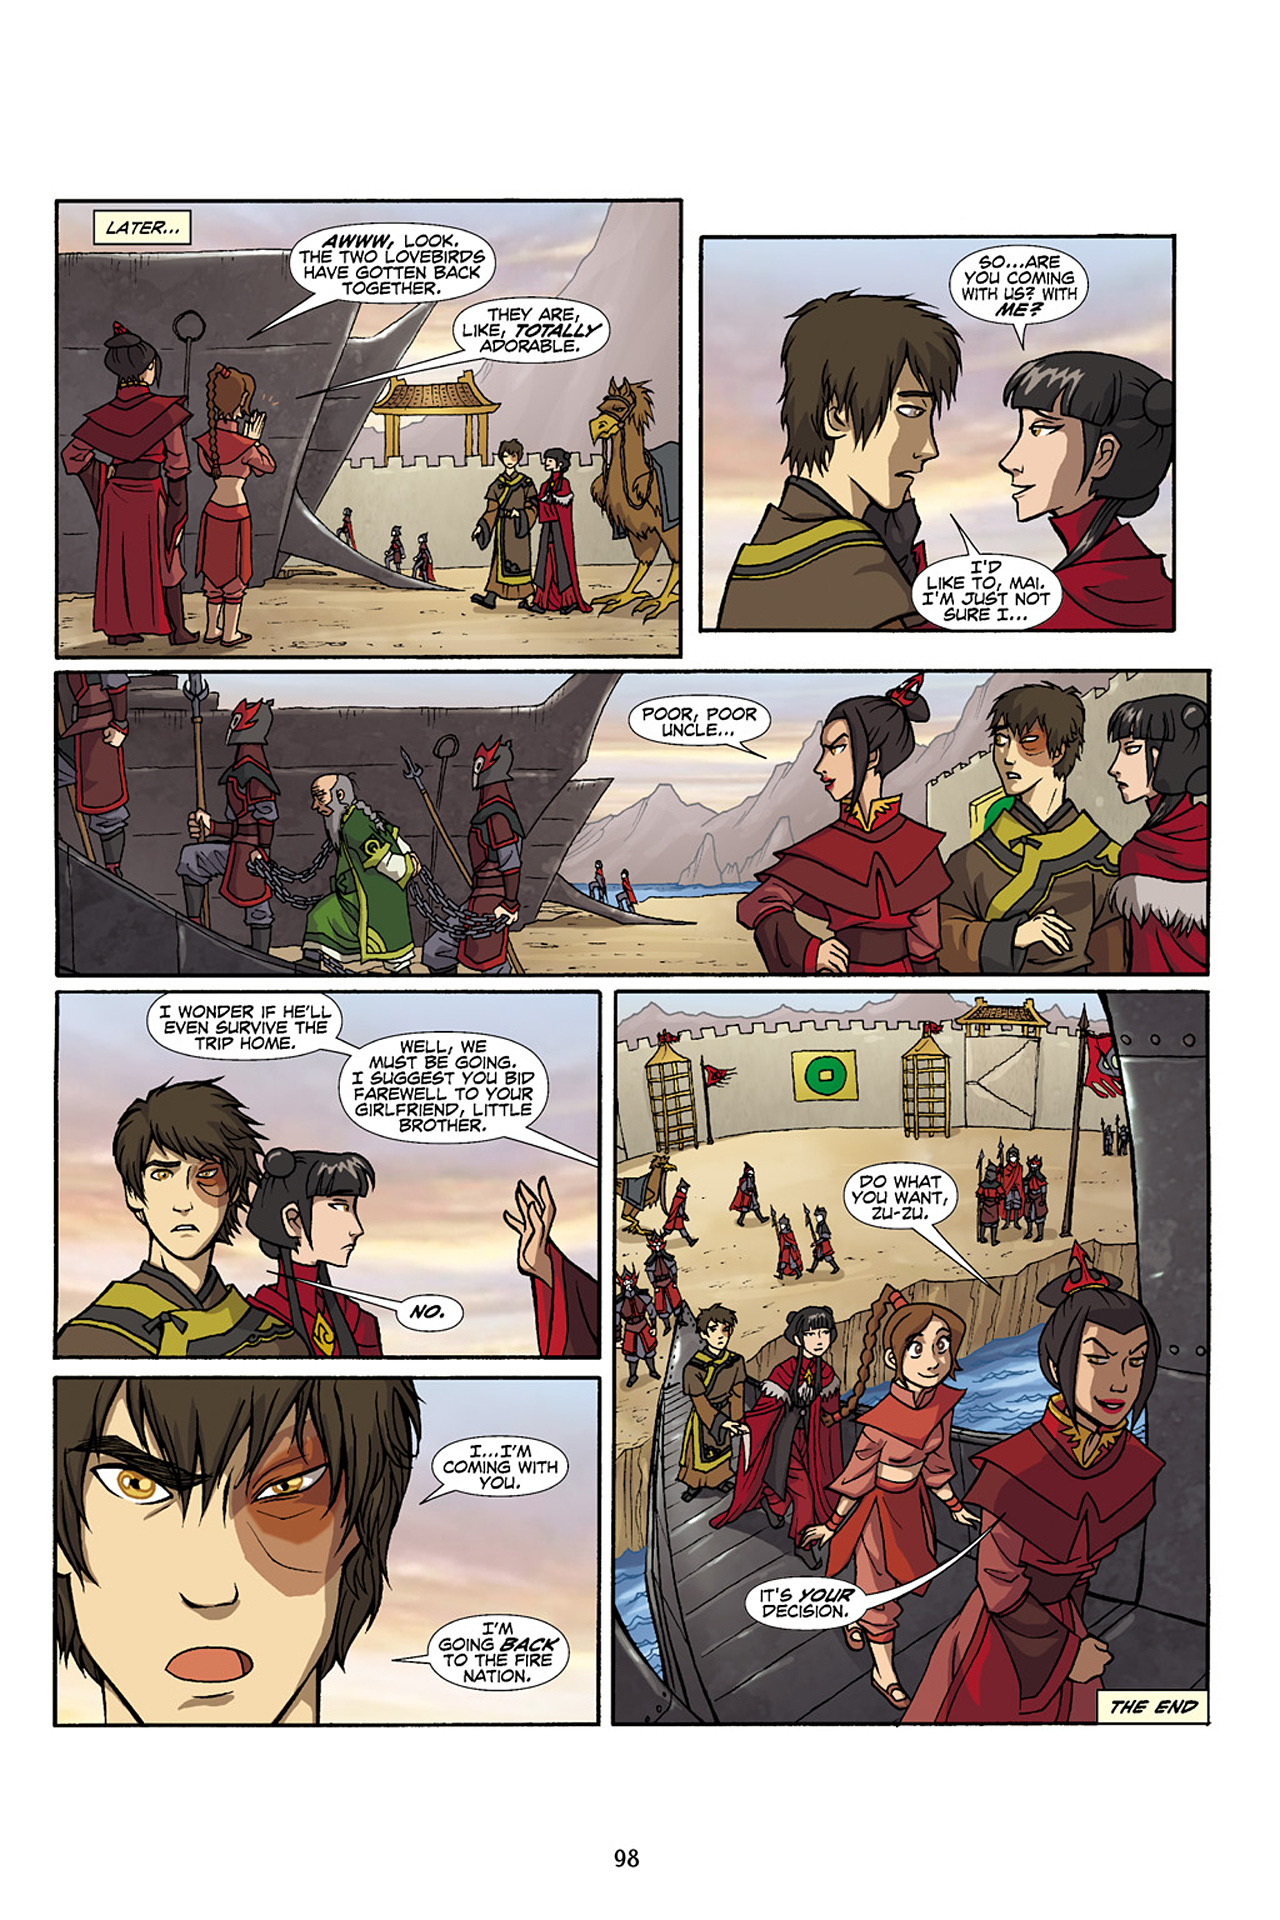 Nickelodeon Avatar: The Last Airbender - The Lost Adventures chap full pic 99